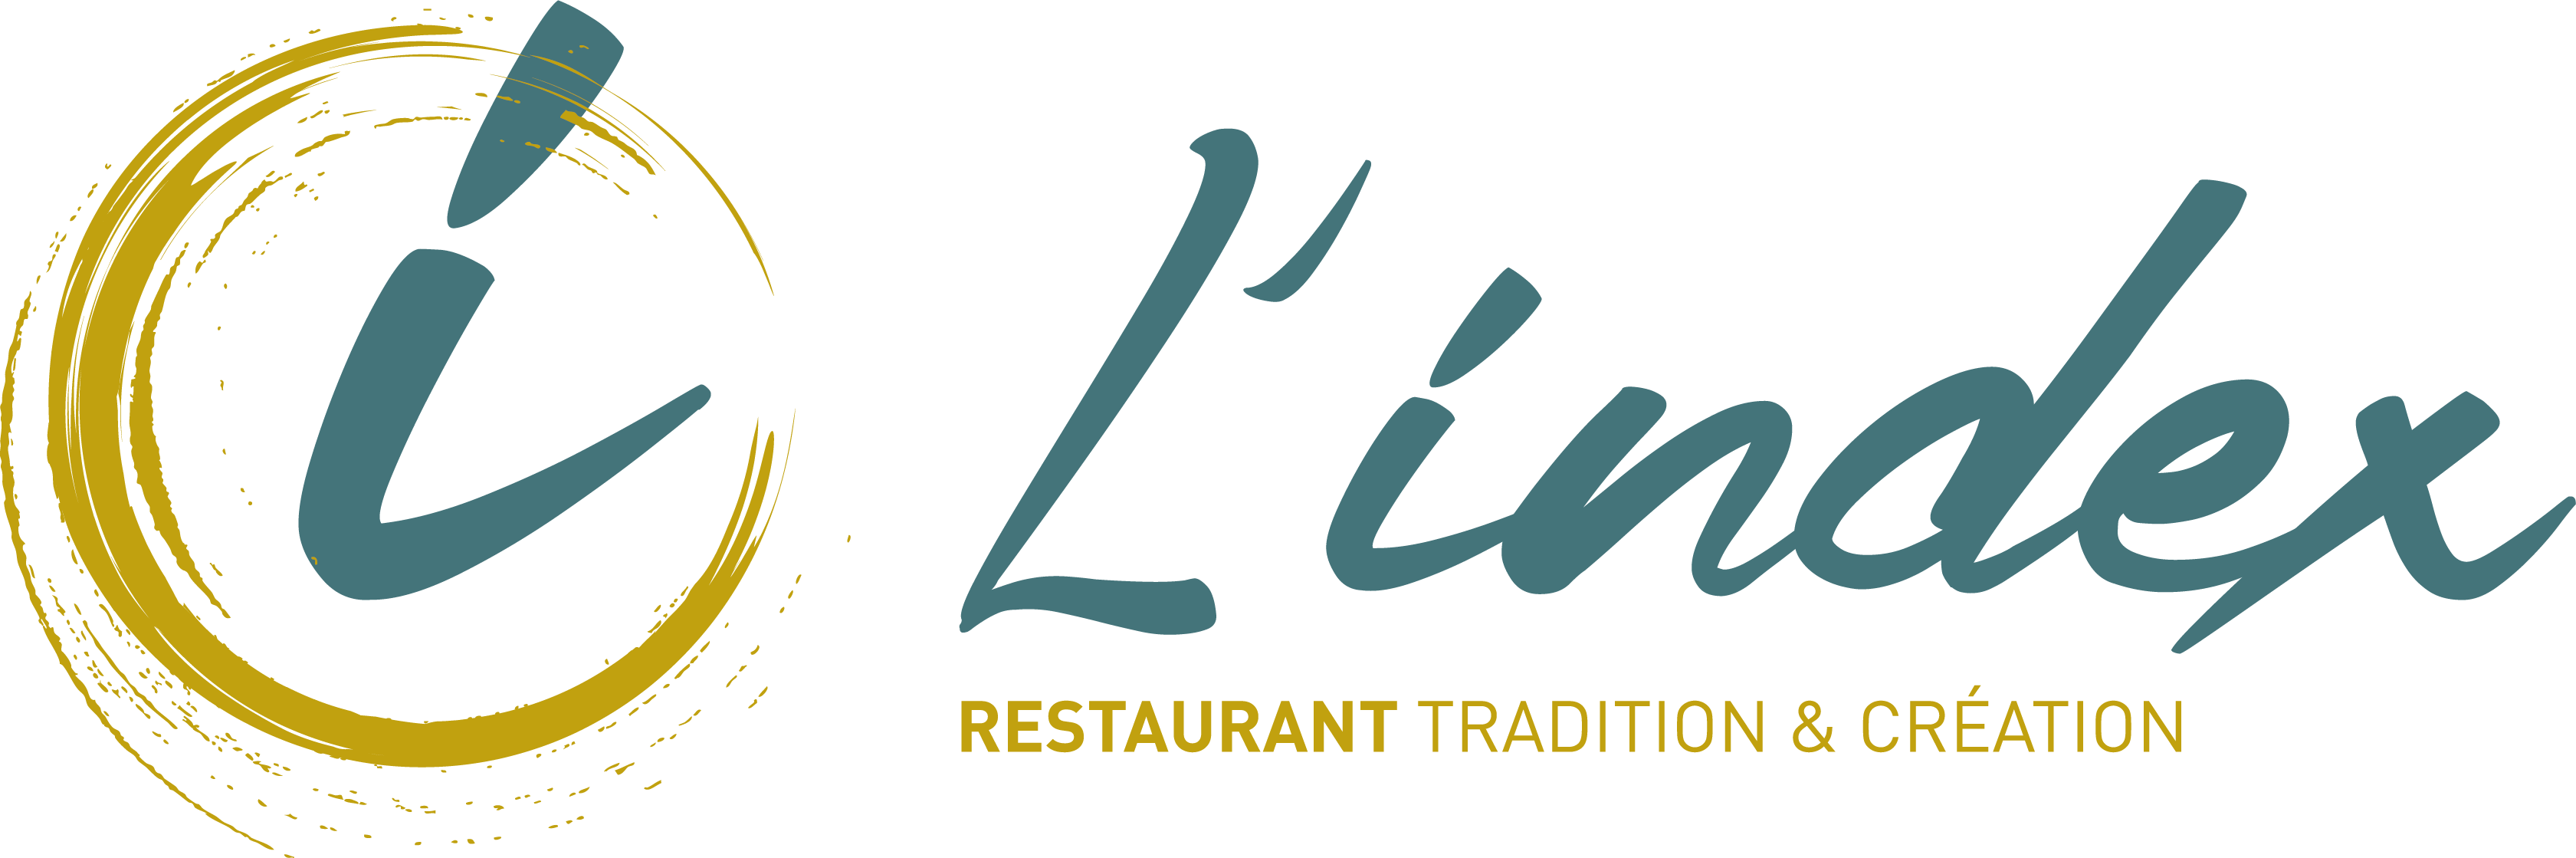 L'Index Restaurant